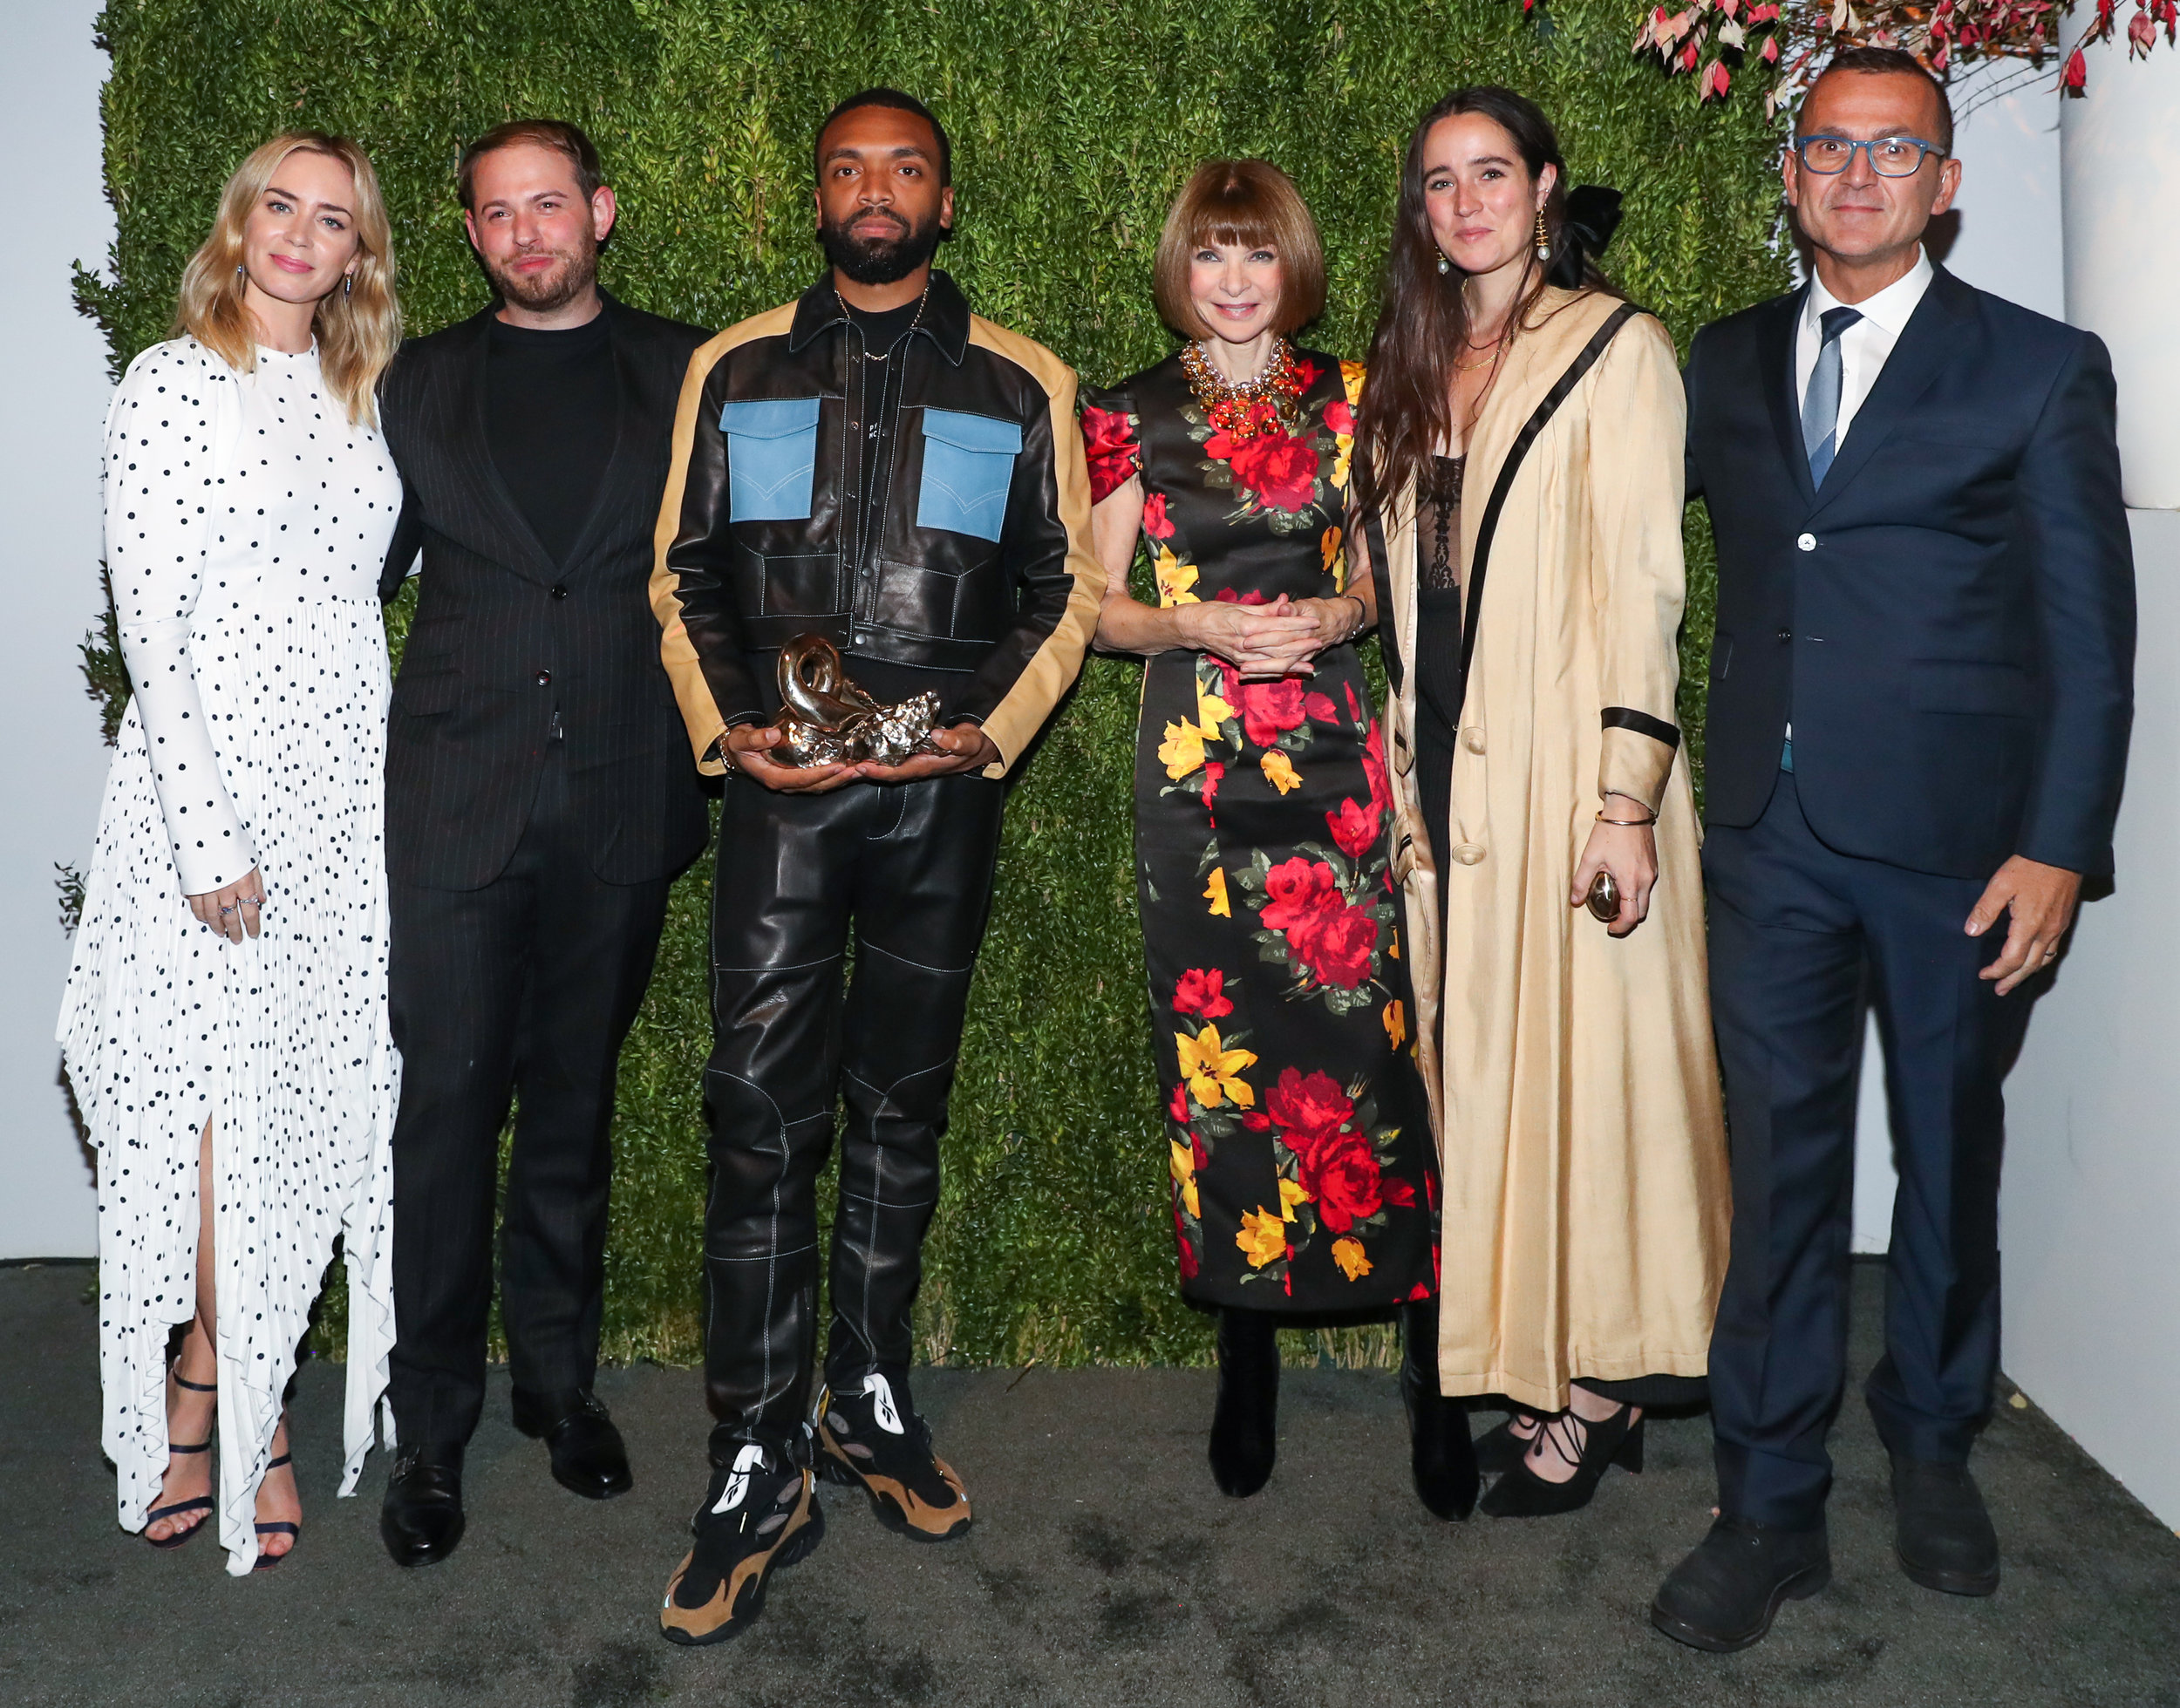 Pictured from left to right: Emily Blunt (presenter of award), runner-up Jonathan Cohen, winner Kerby Jean-Raymond, U.S.  Vogue  EIC Anna Wintour, runner-up Emily Adams Bode, and CFDA chief executive Steven Kolb.  Image    via   .